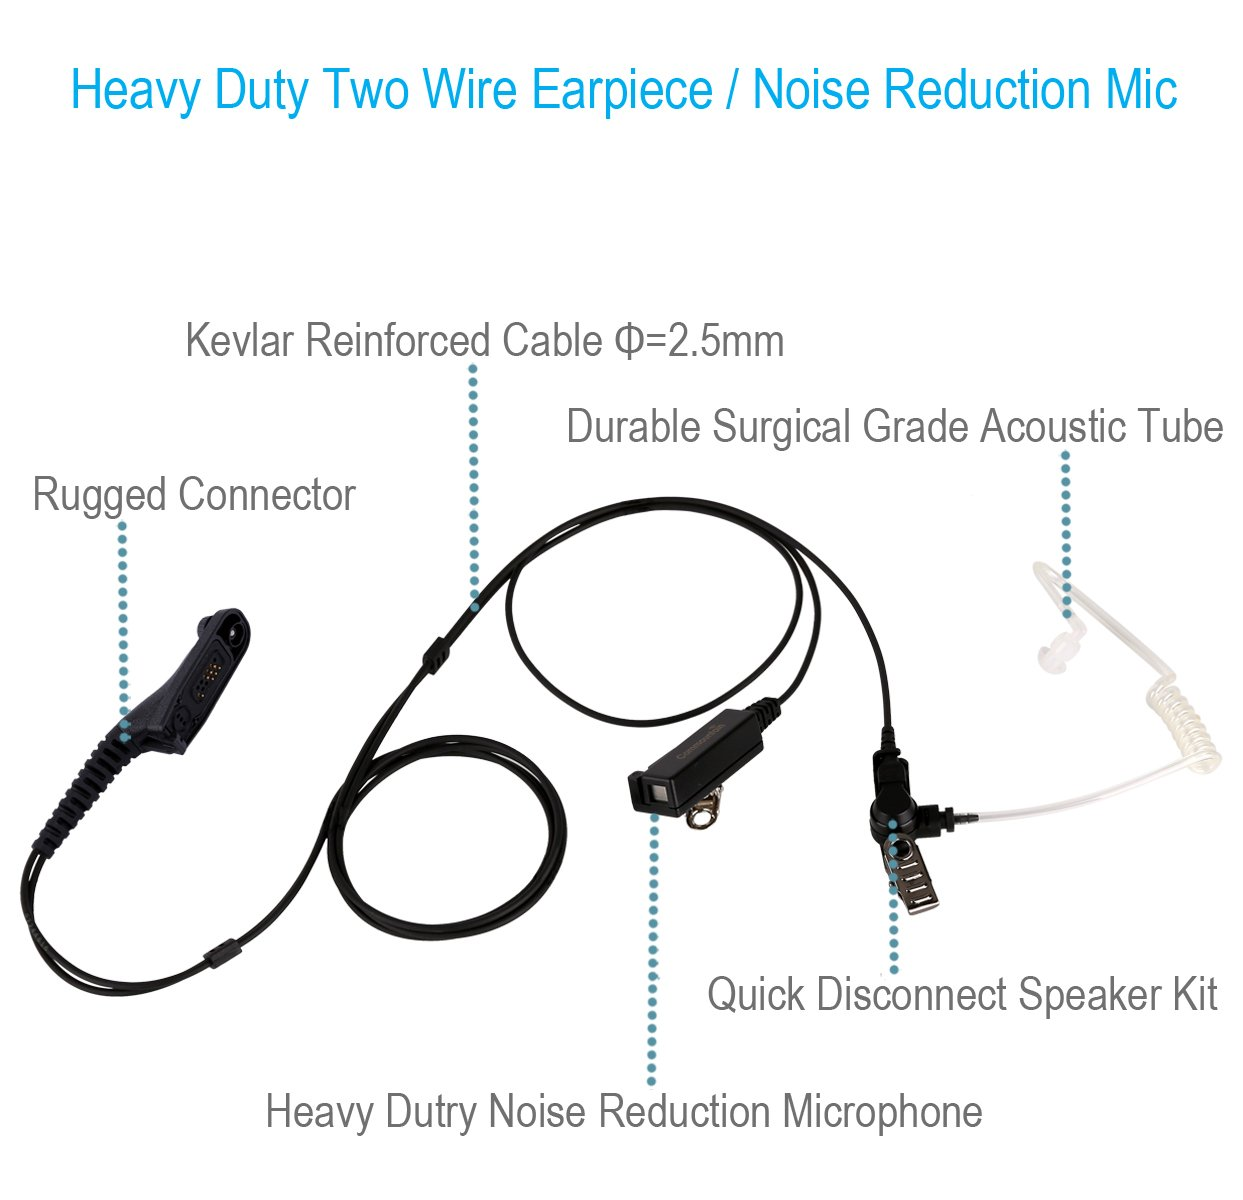 Microphone Wiring Diagrams Xpr 6380 Good 1st Diagram Xlr Amazon Com Two Wire Earpiece With Reinforced Cable For Motorola Rh 55s Jack